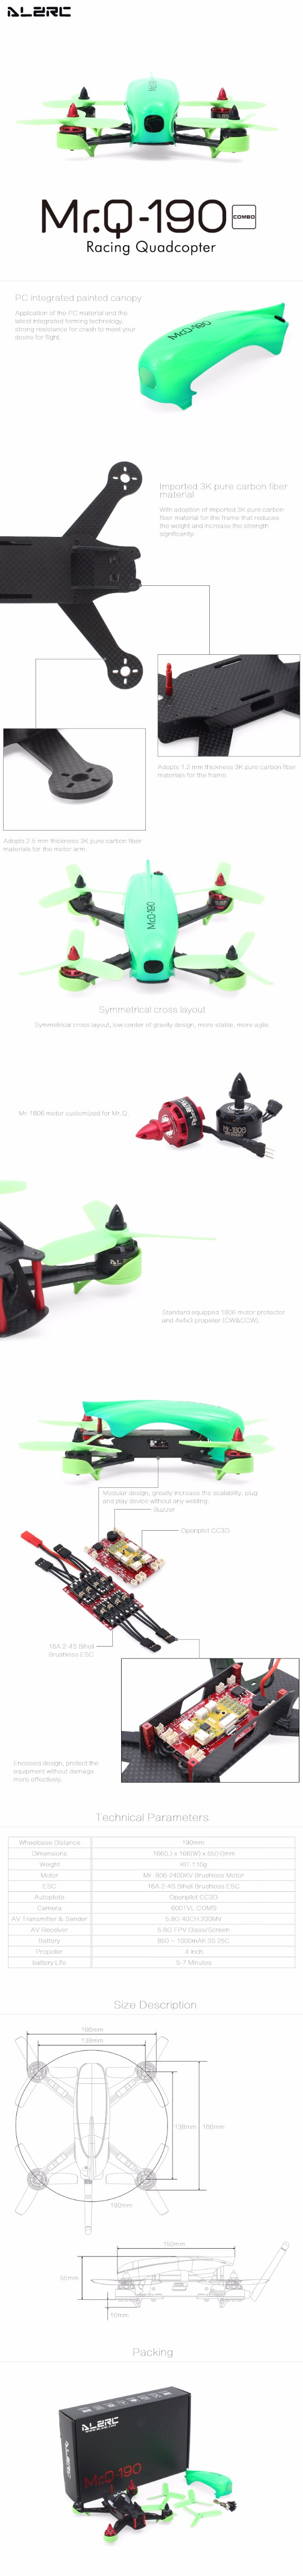 ALZRC – Mr.Q 190 Four-Axis Racing Aircraft 3K Pure Carbon Fiber RC Drones (With 4XMotor and 4XESC and 1XCC3D) Free shipping